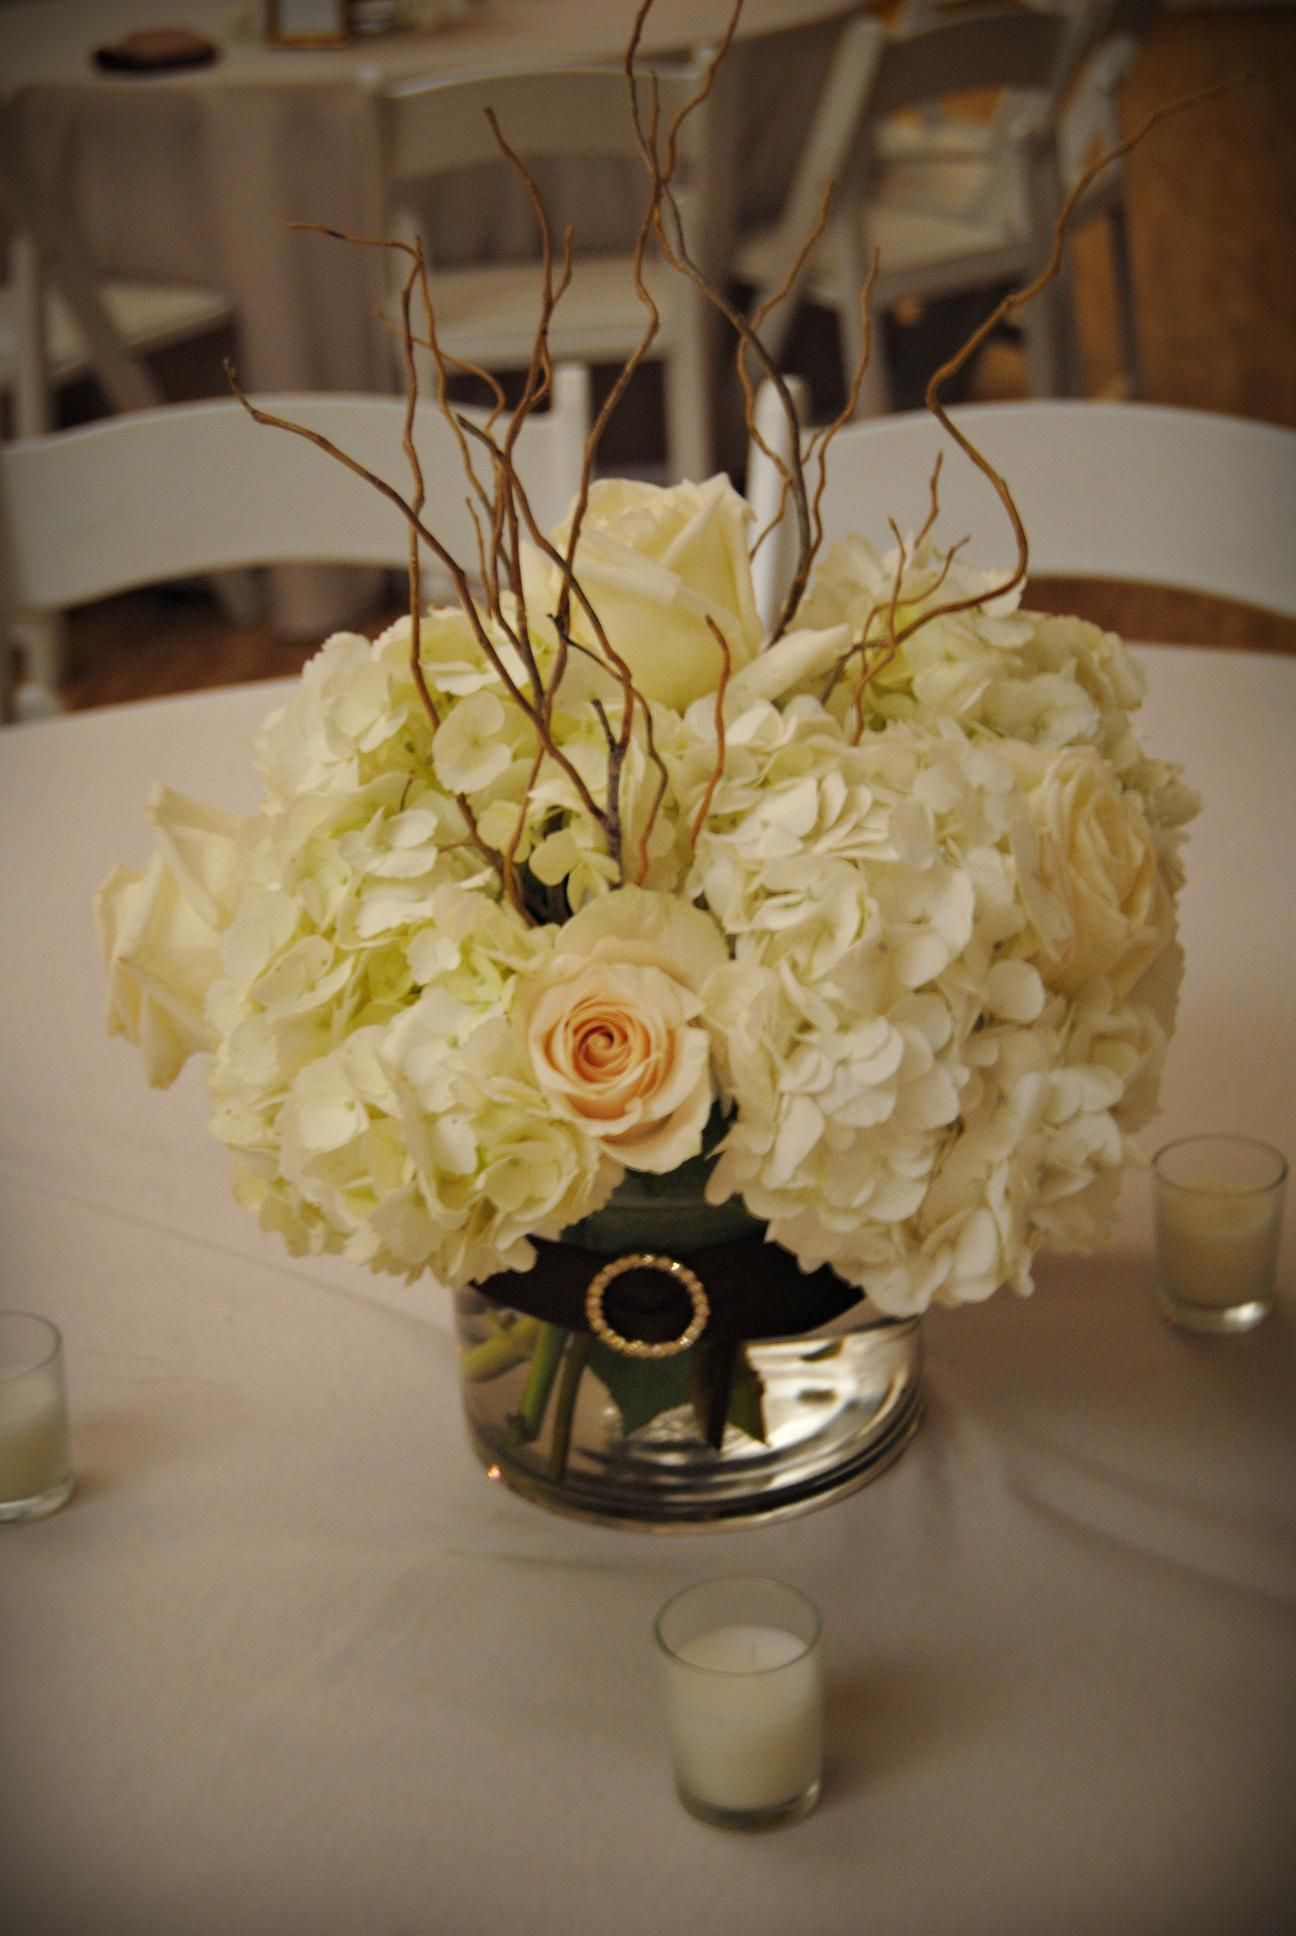 Feathers Annateague White Wedding Flowers Wedding Flowers Hydrangea Curly Willow